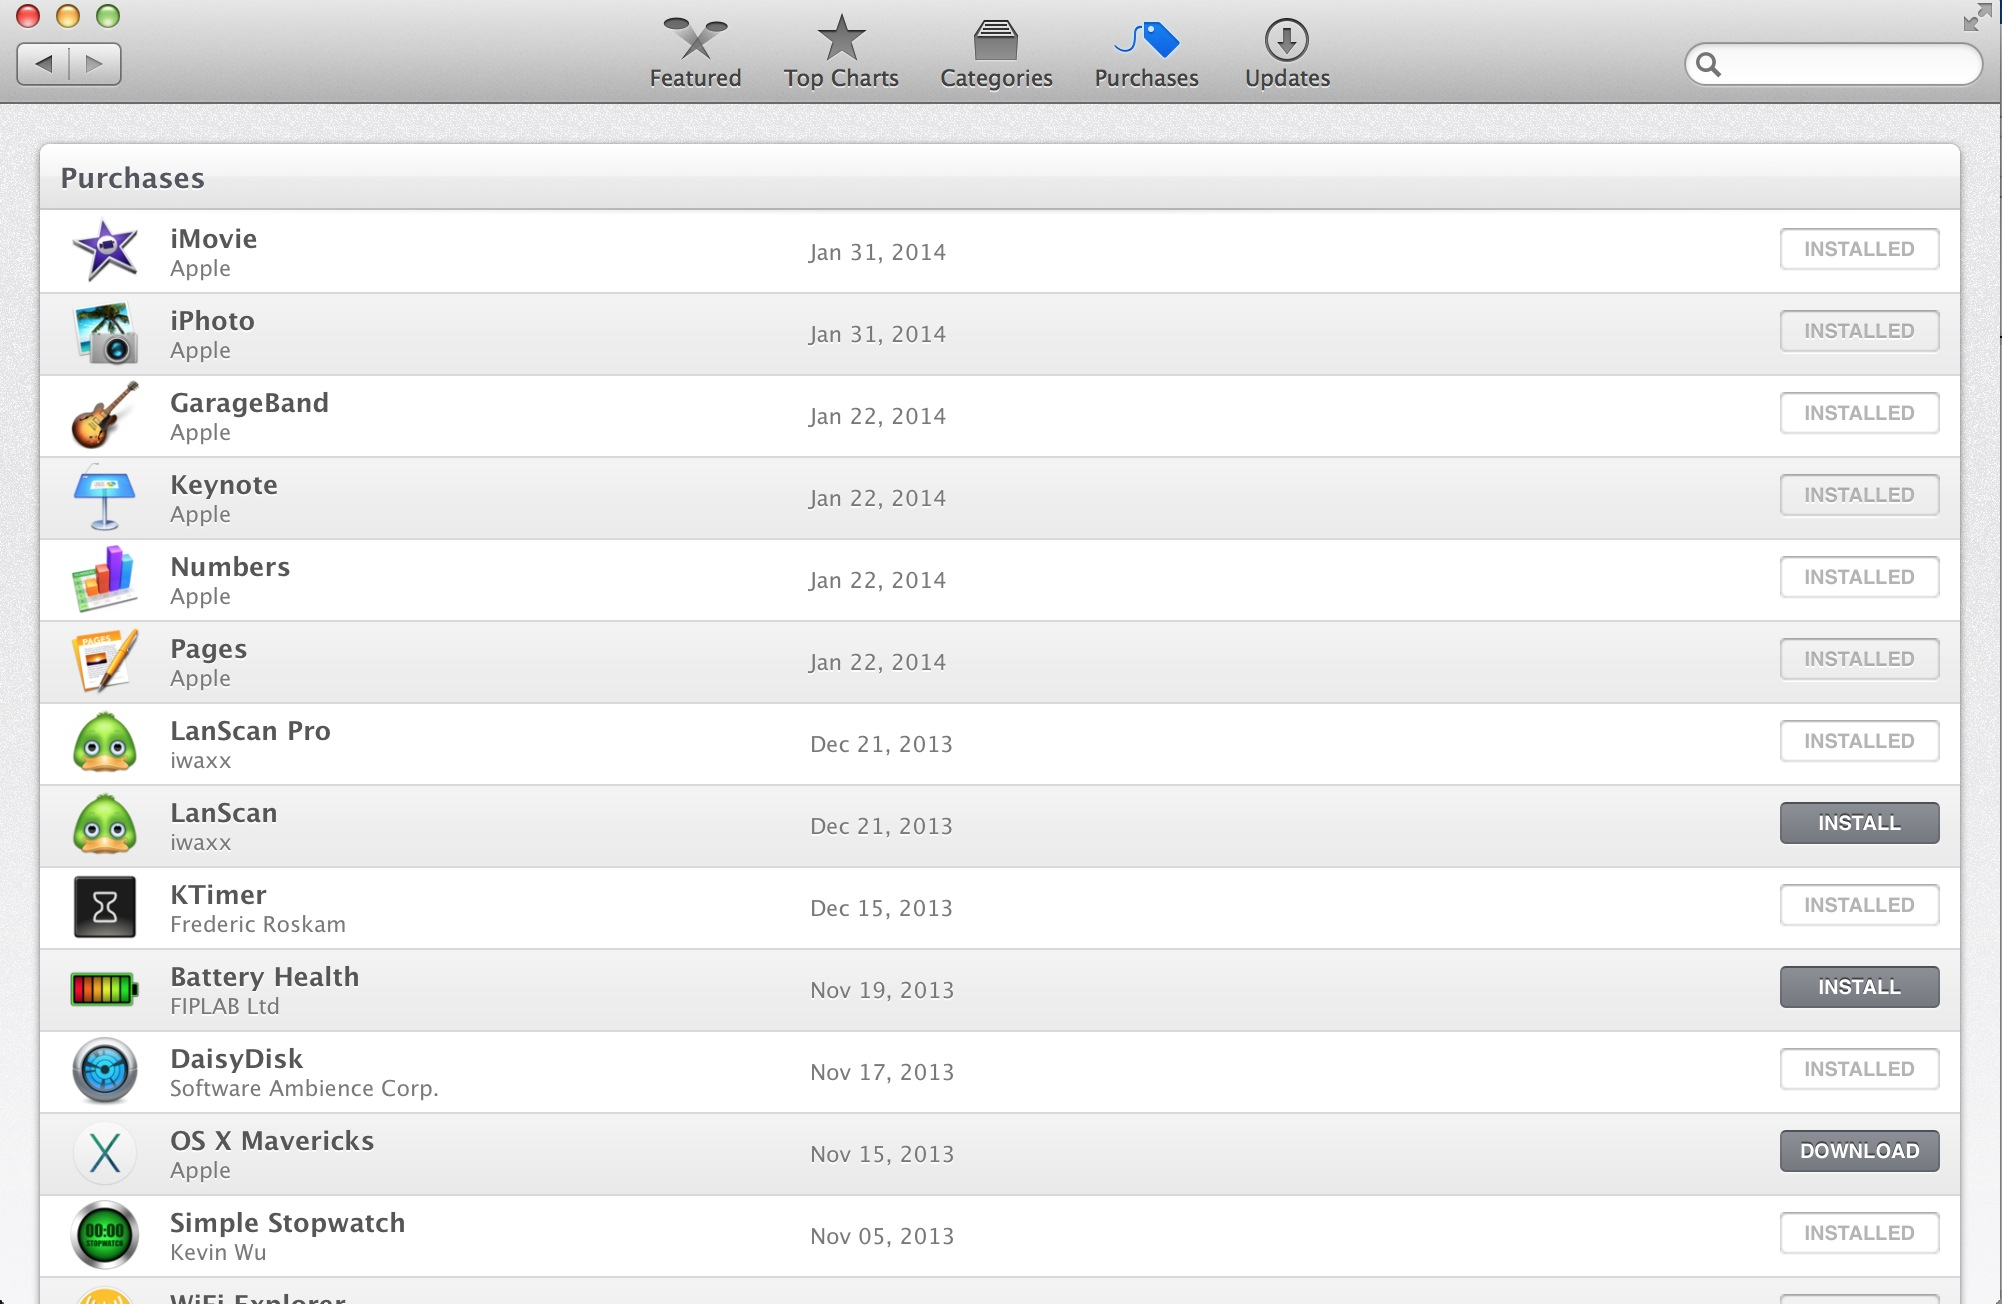 App Store Purchased Items